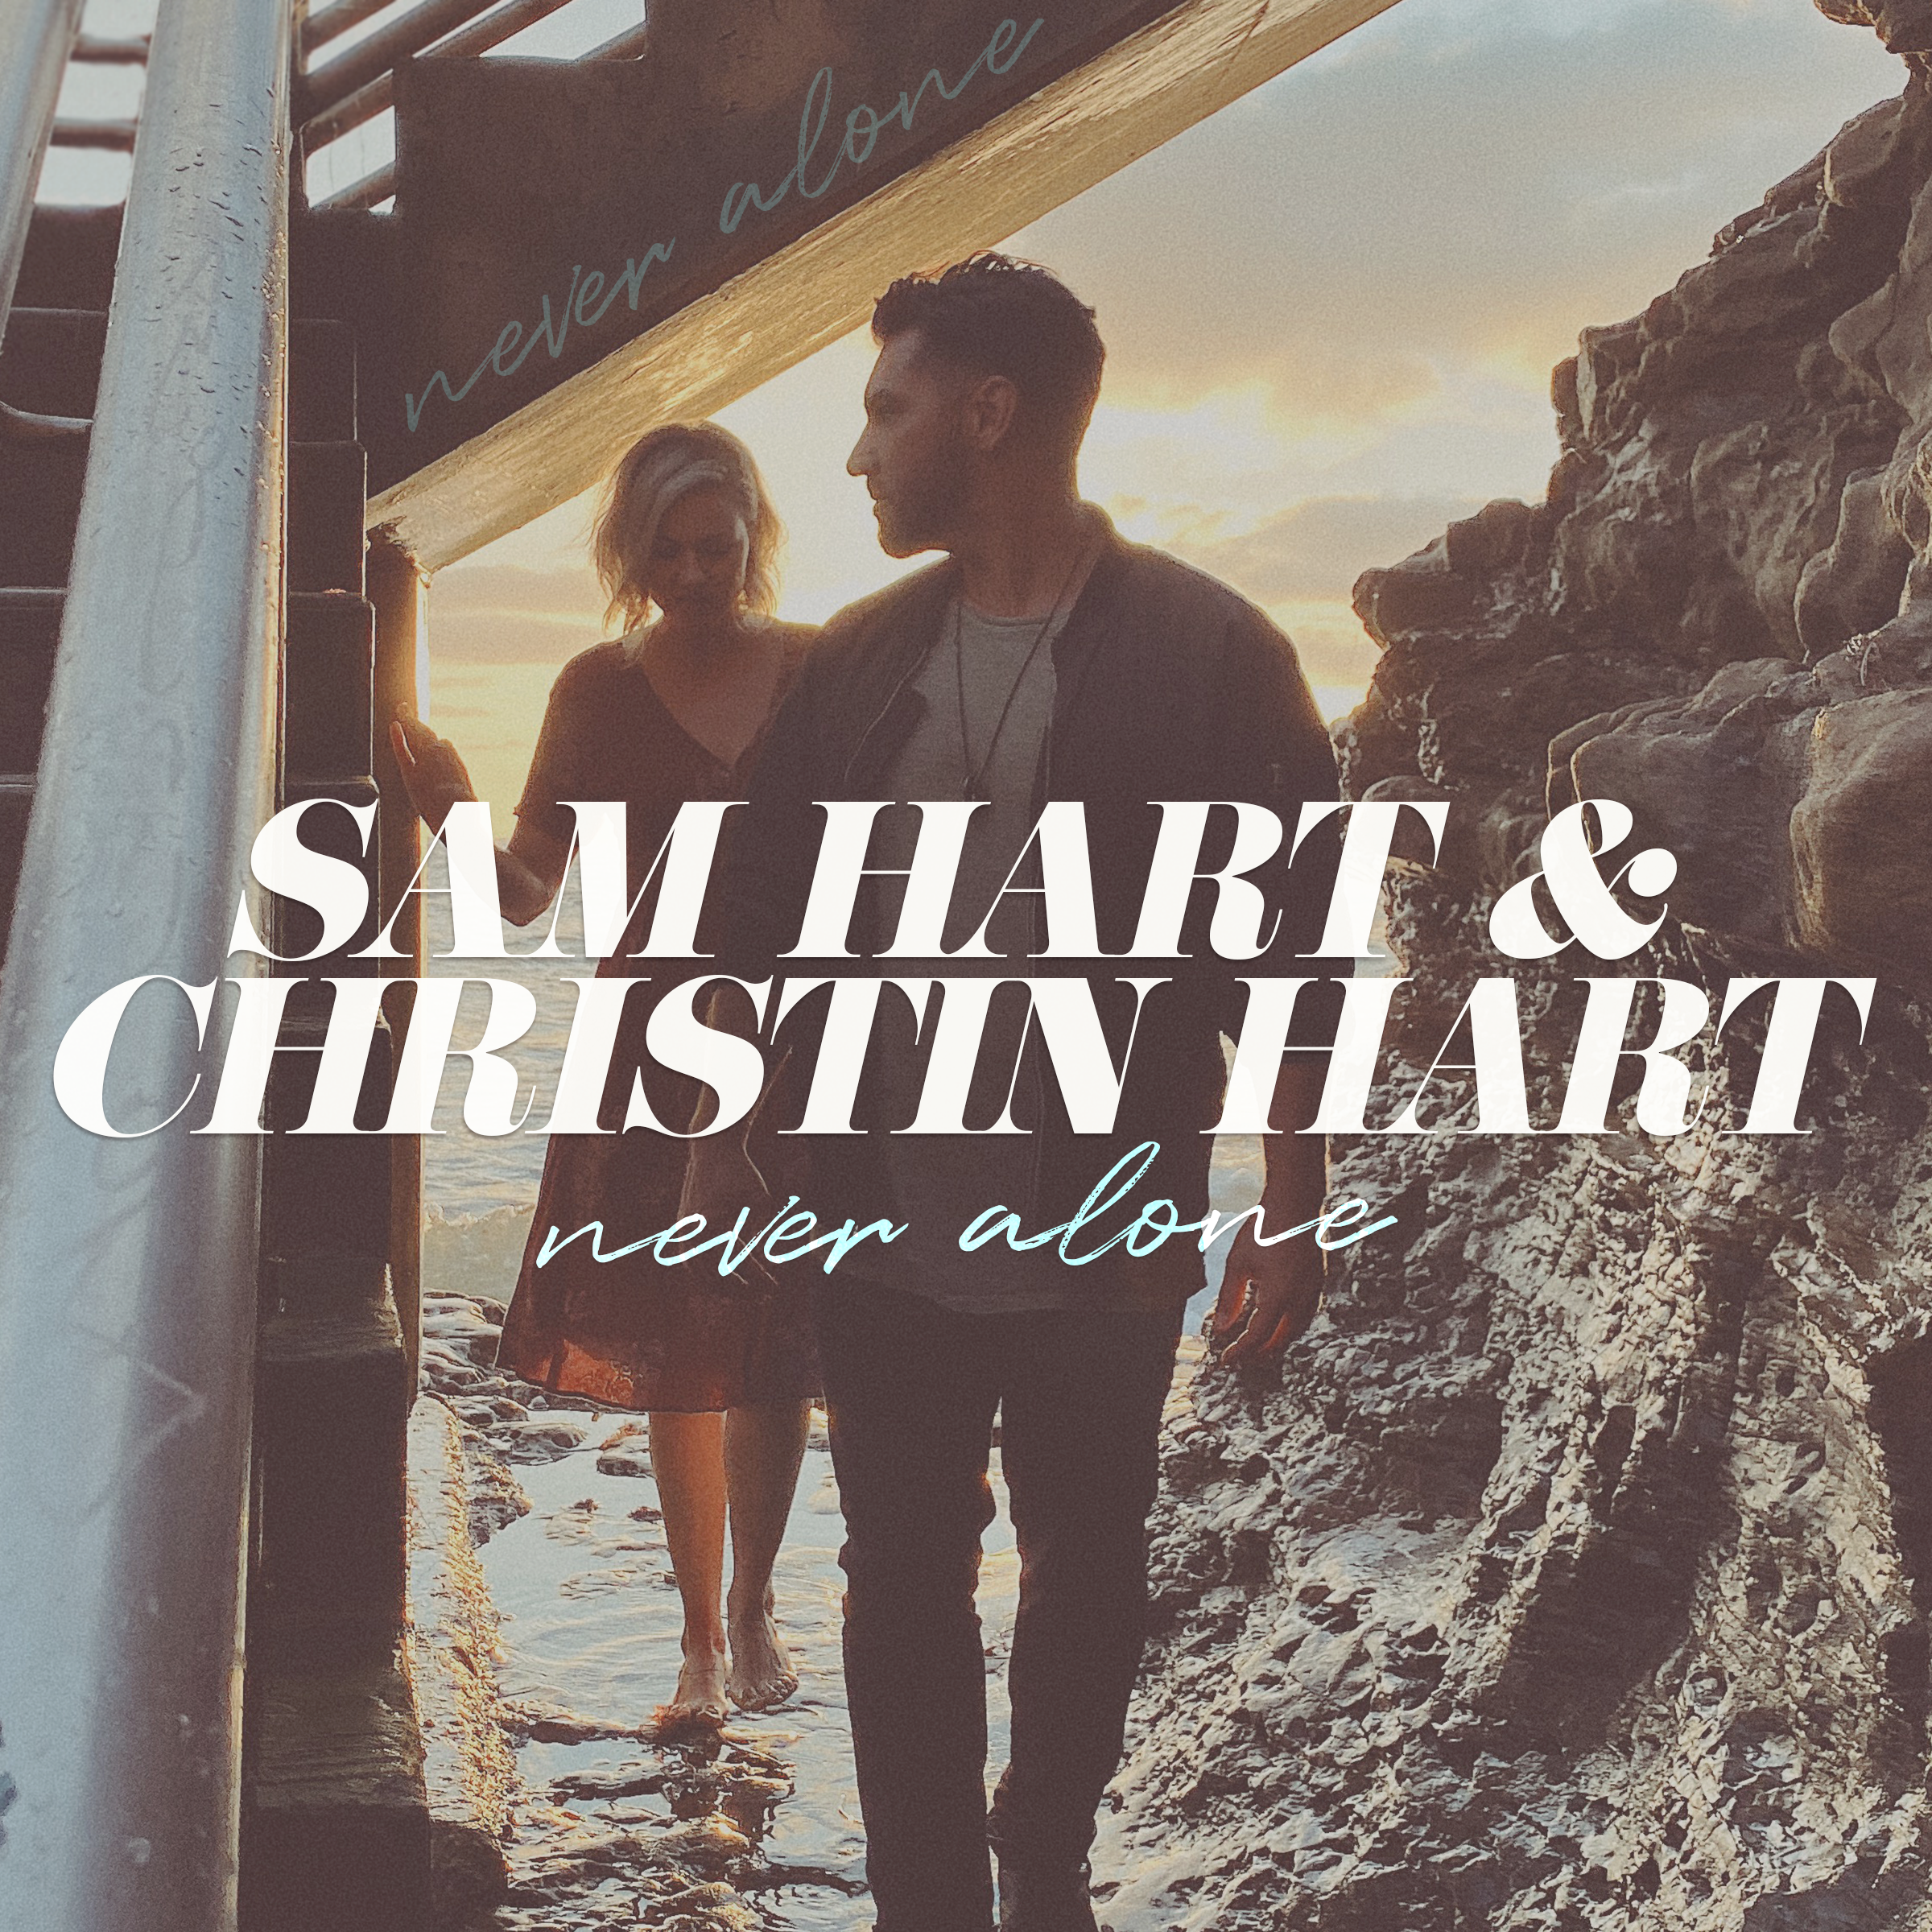 SAM AND CHRISTIN HART RELEASE SINGLE TO CHRISTIAN RADIO